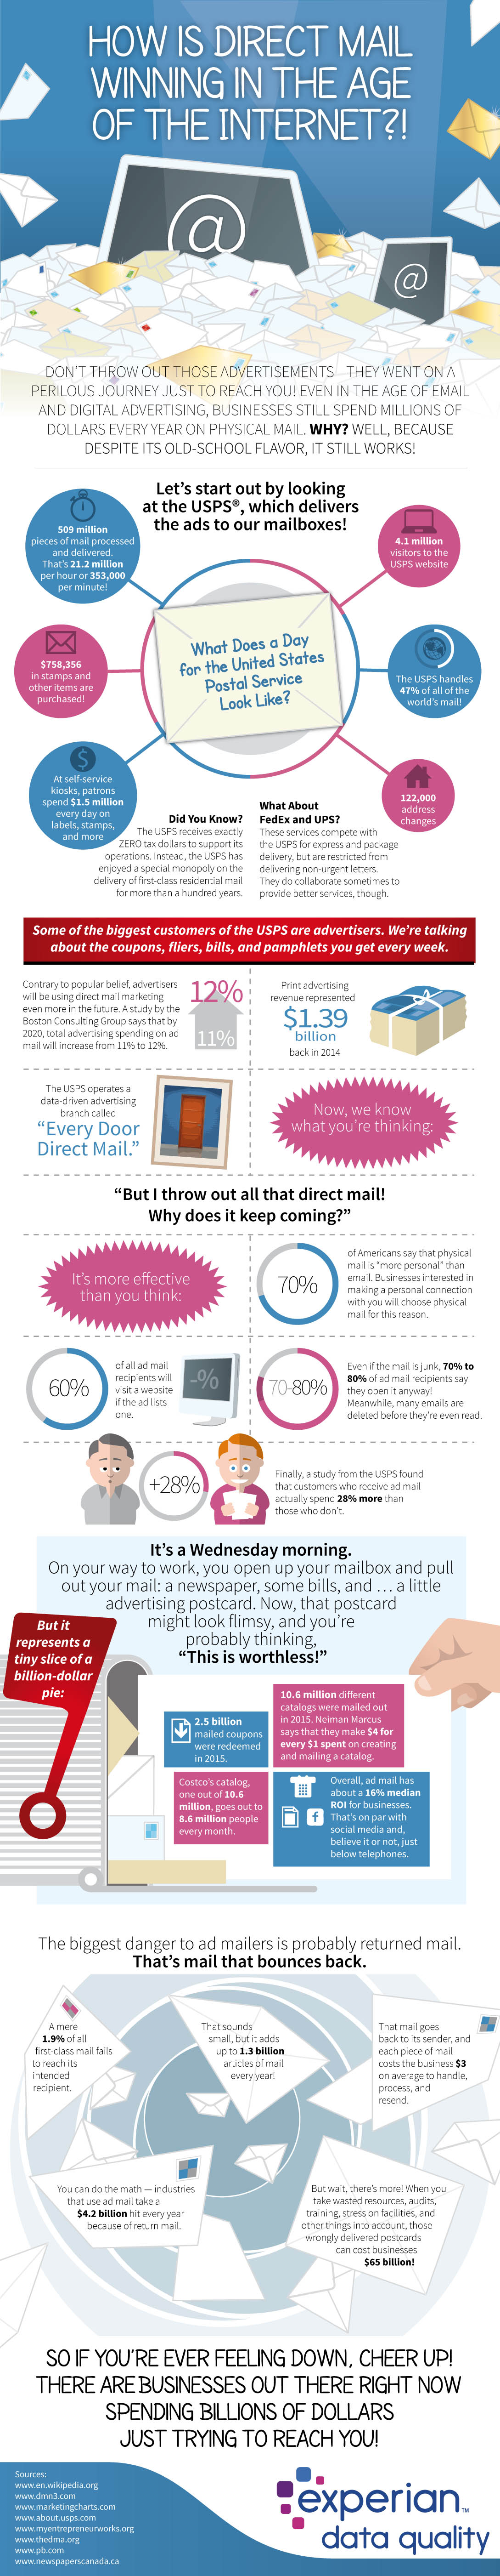 How Direct Mail is Winning in the Internet Age